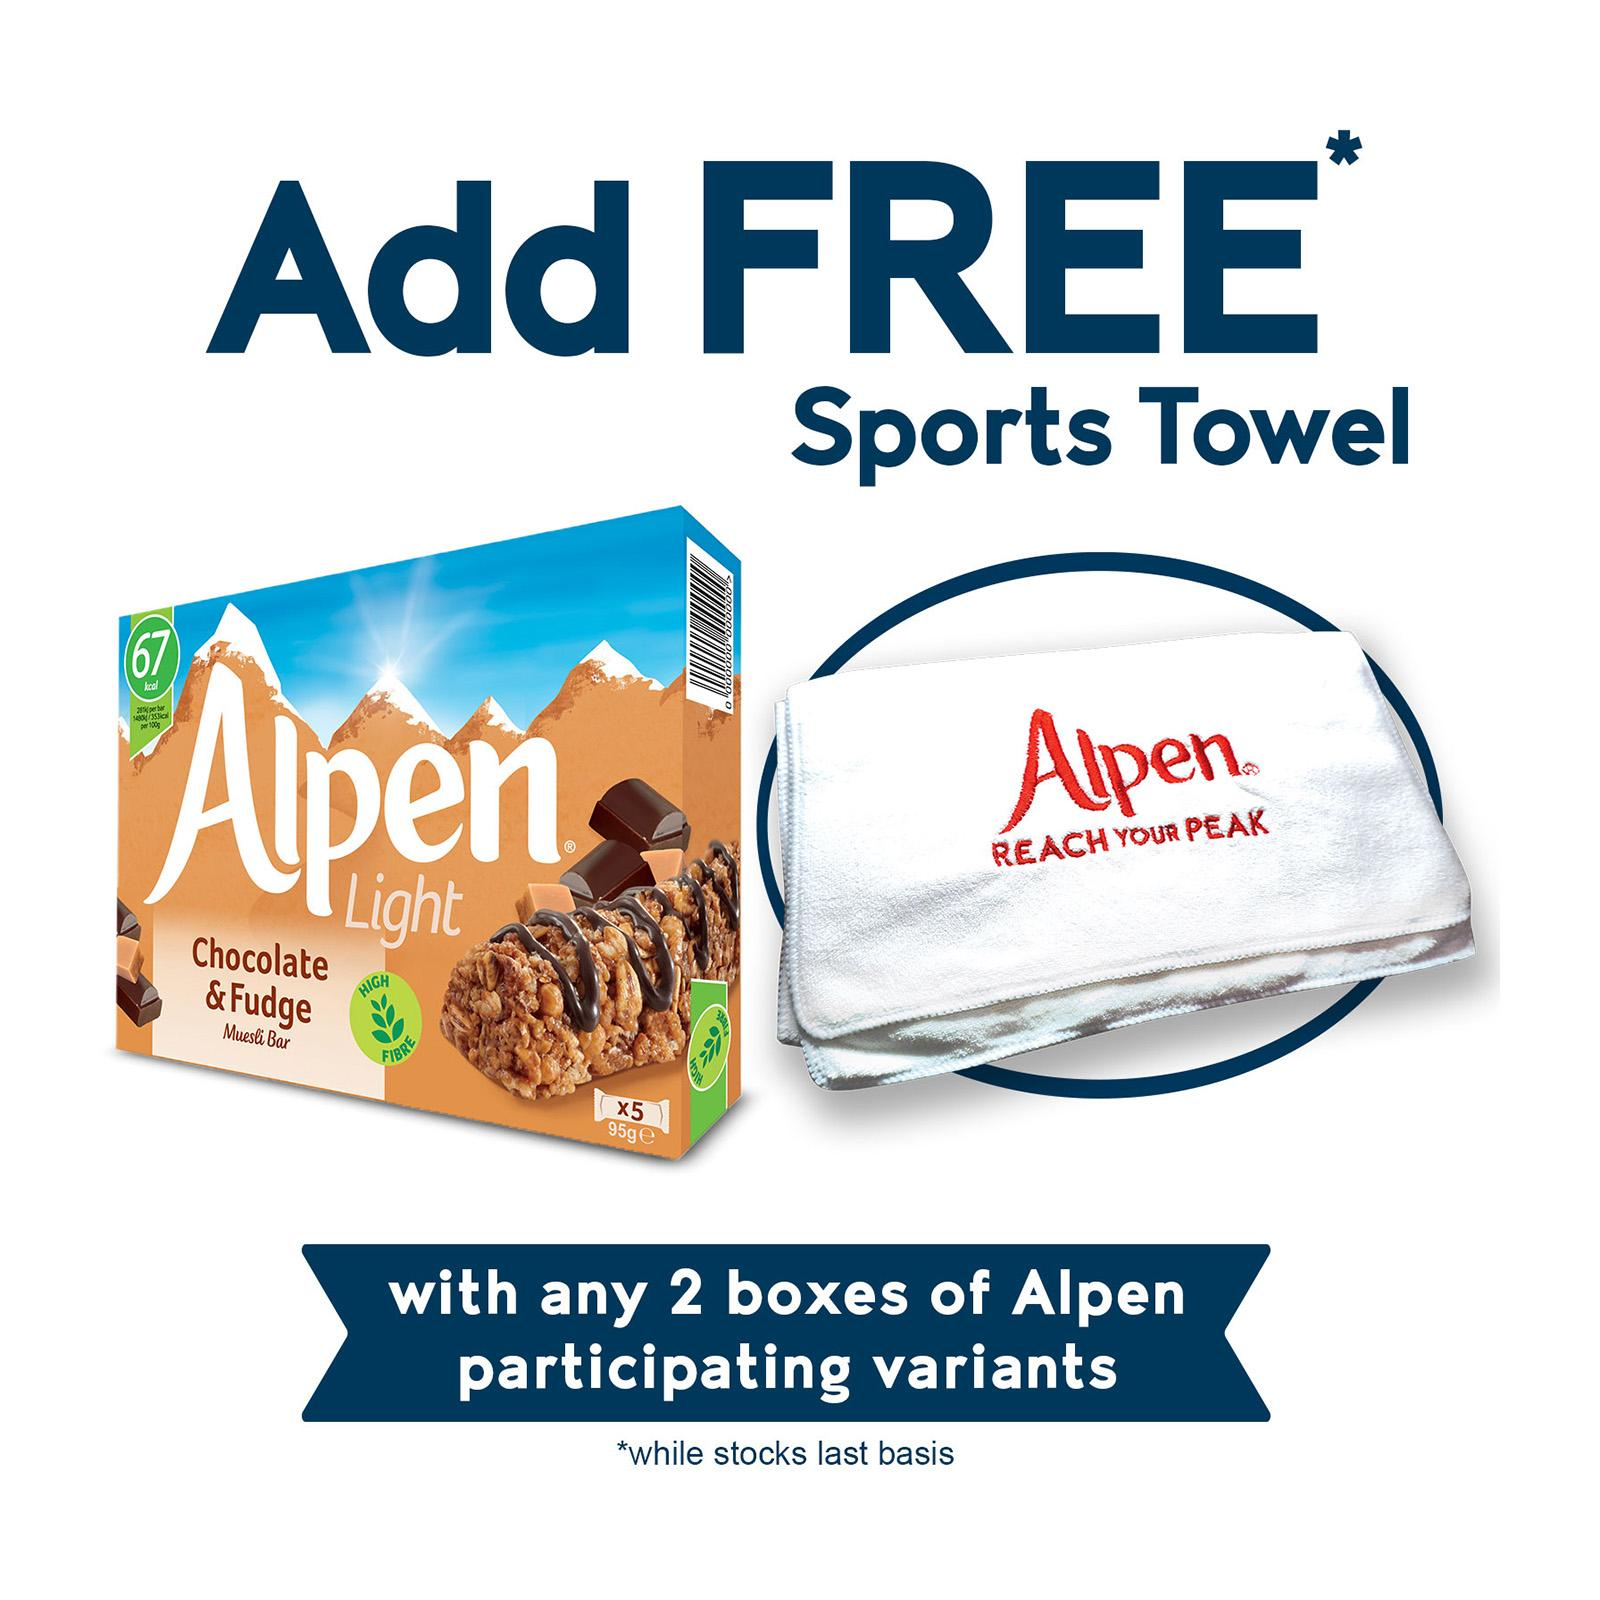 Alpen Light Chocolate and Fudge Bars